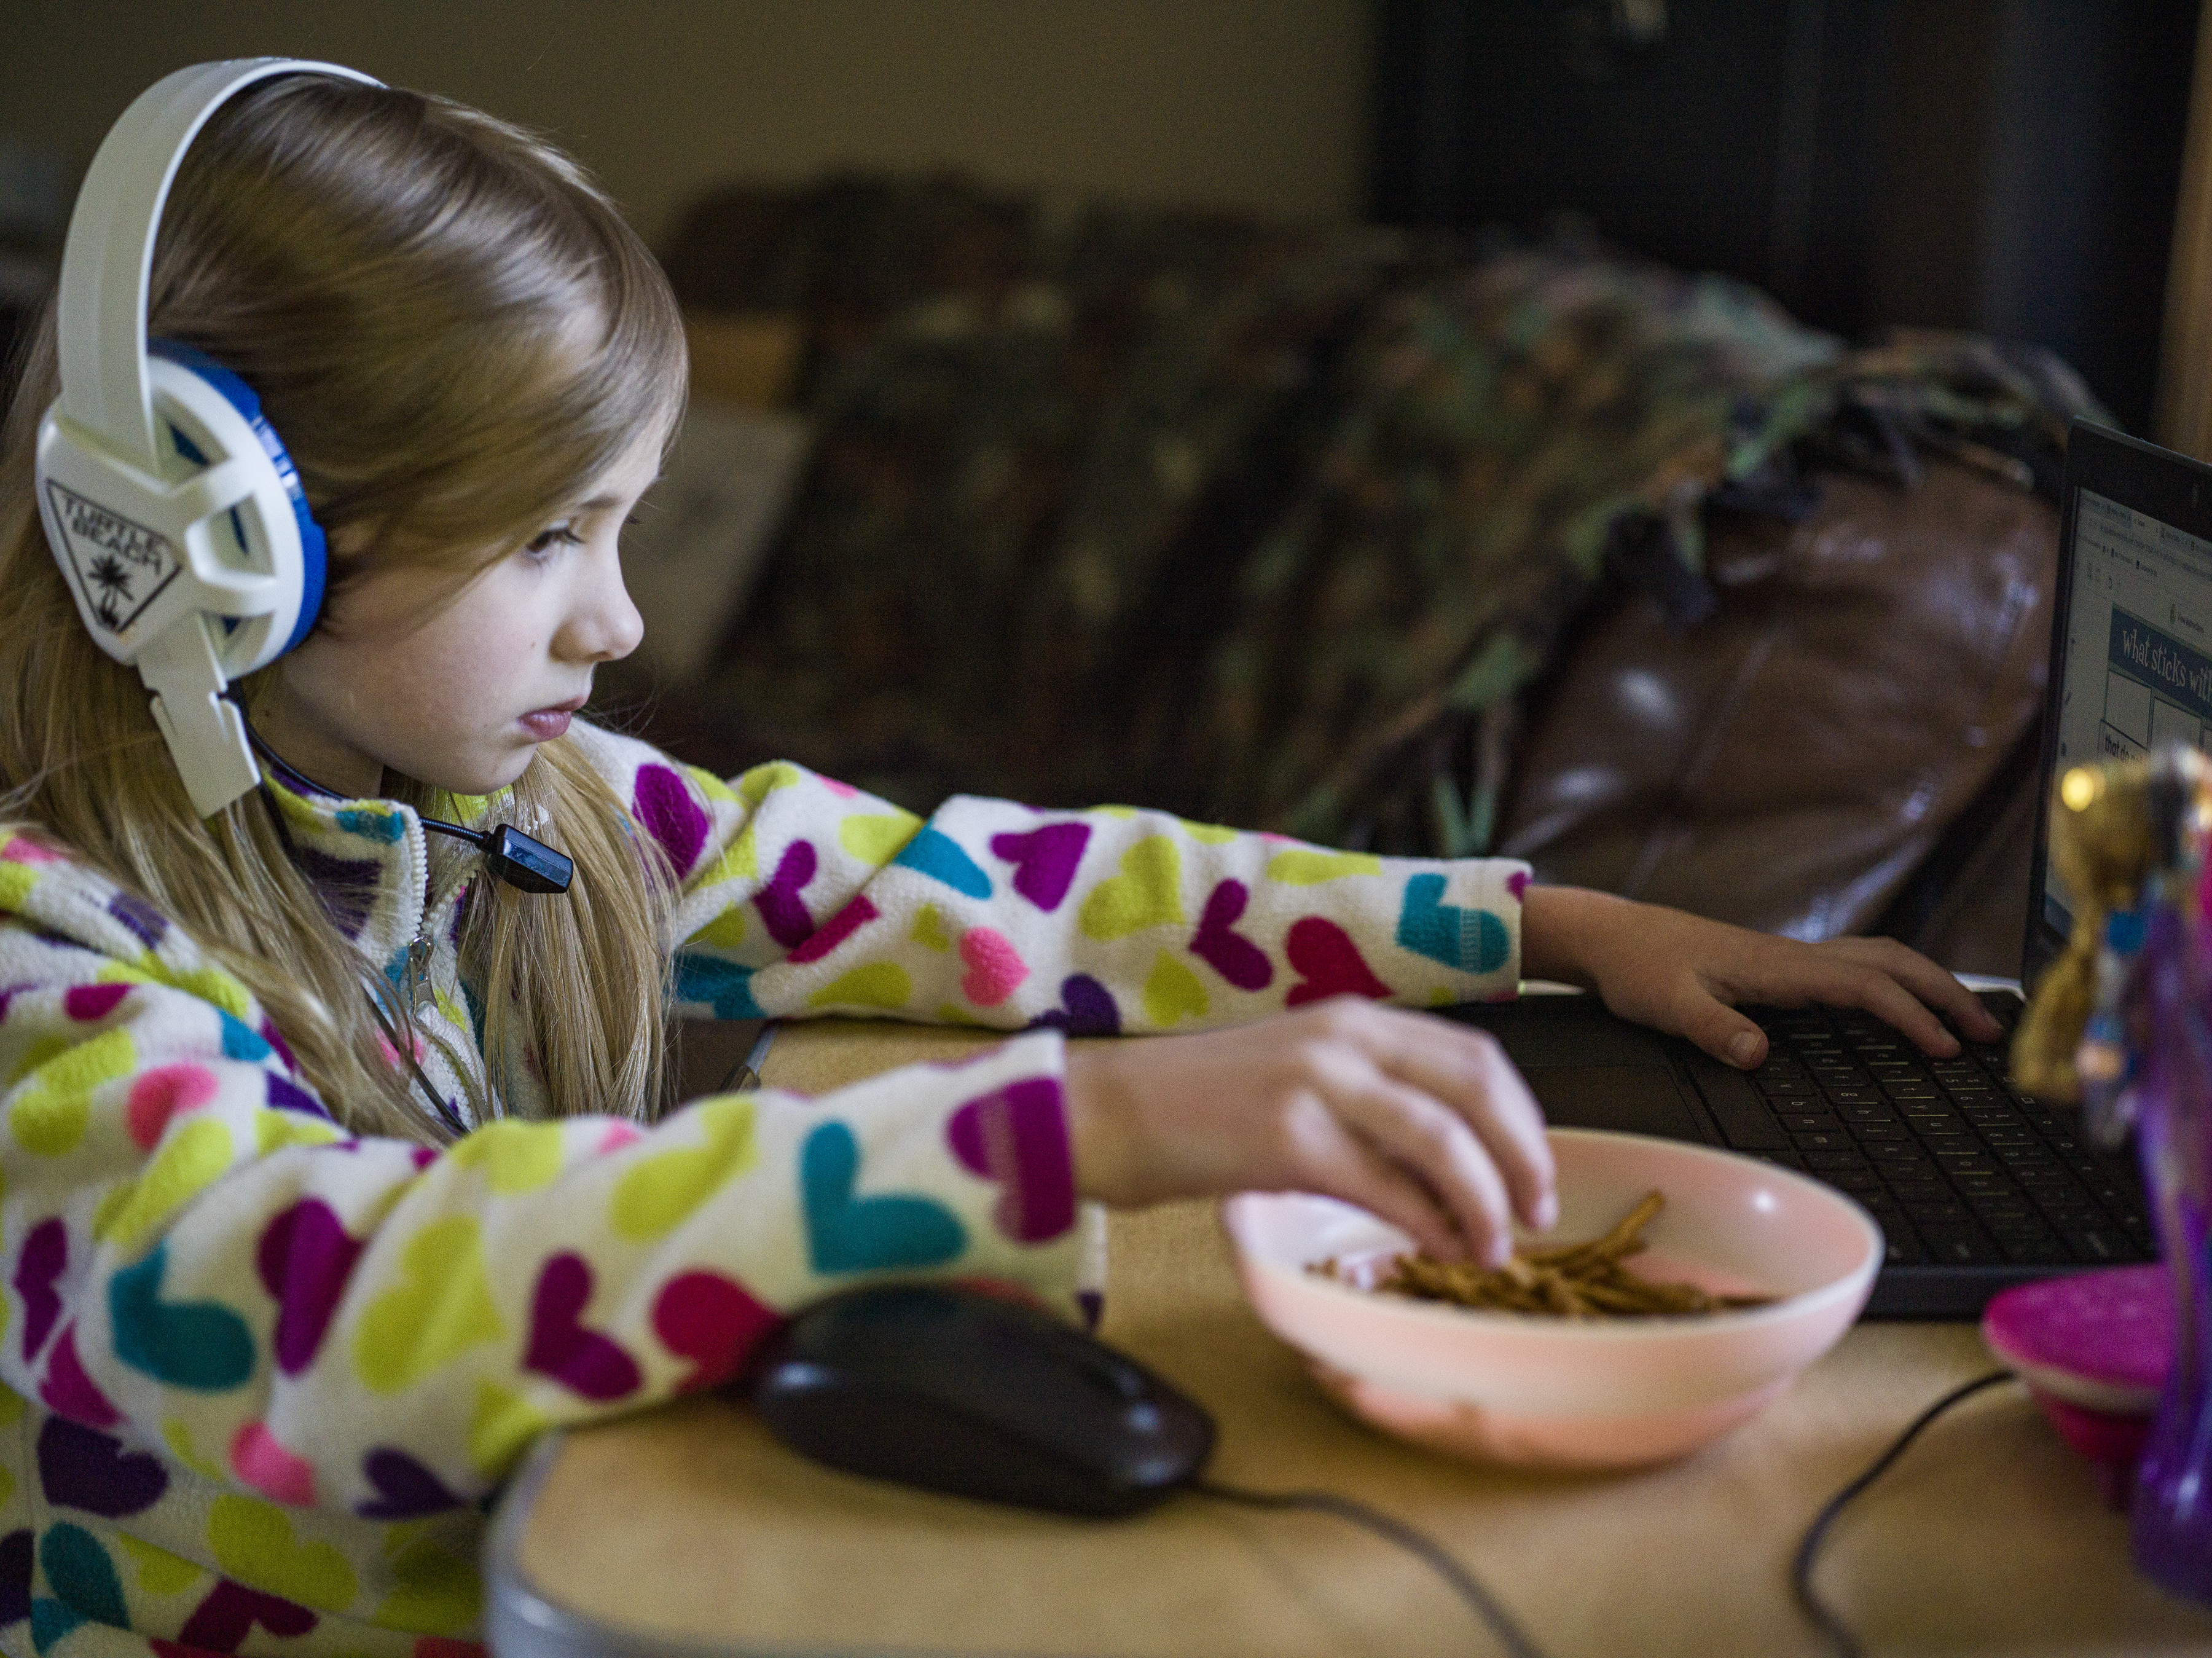 In Owatonna, MN on May 12, 2021, Abigail Hadt, 7, does some online schoolwork.